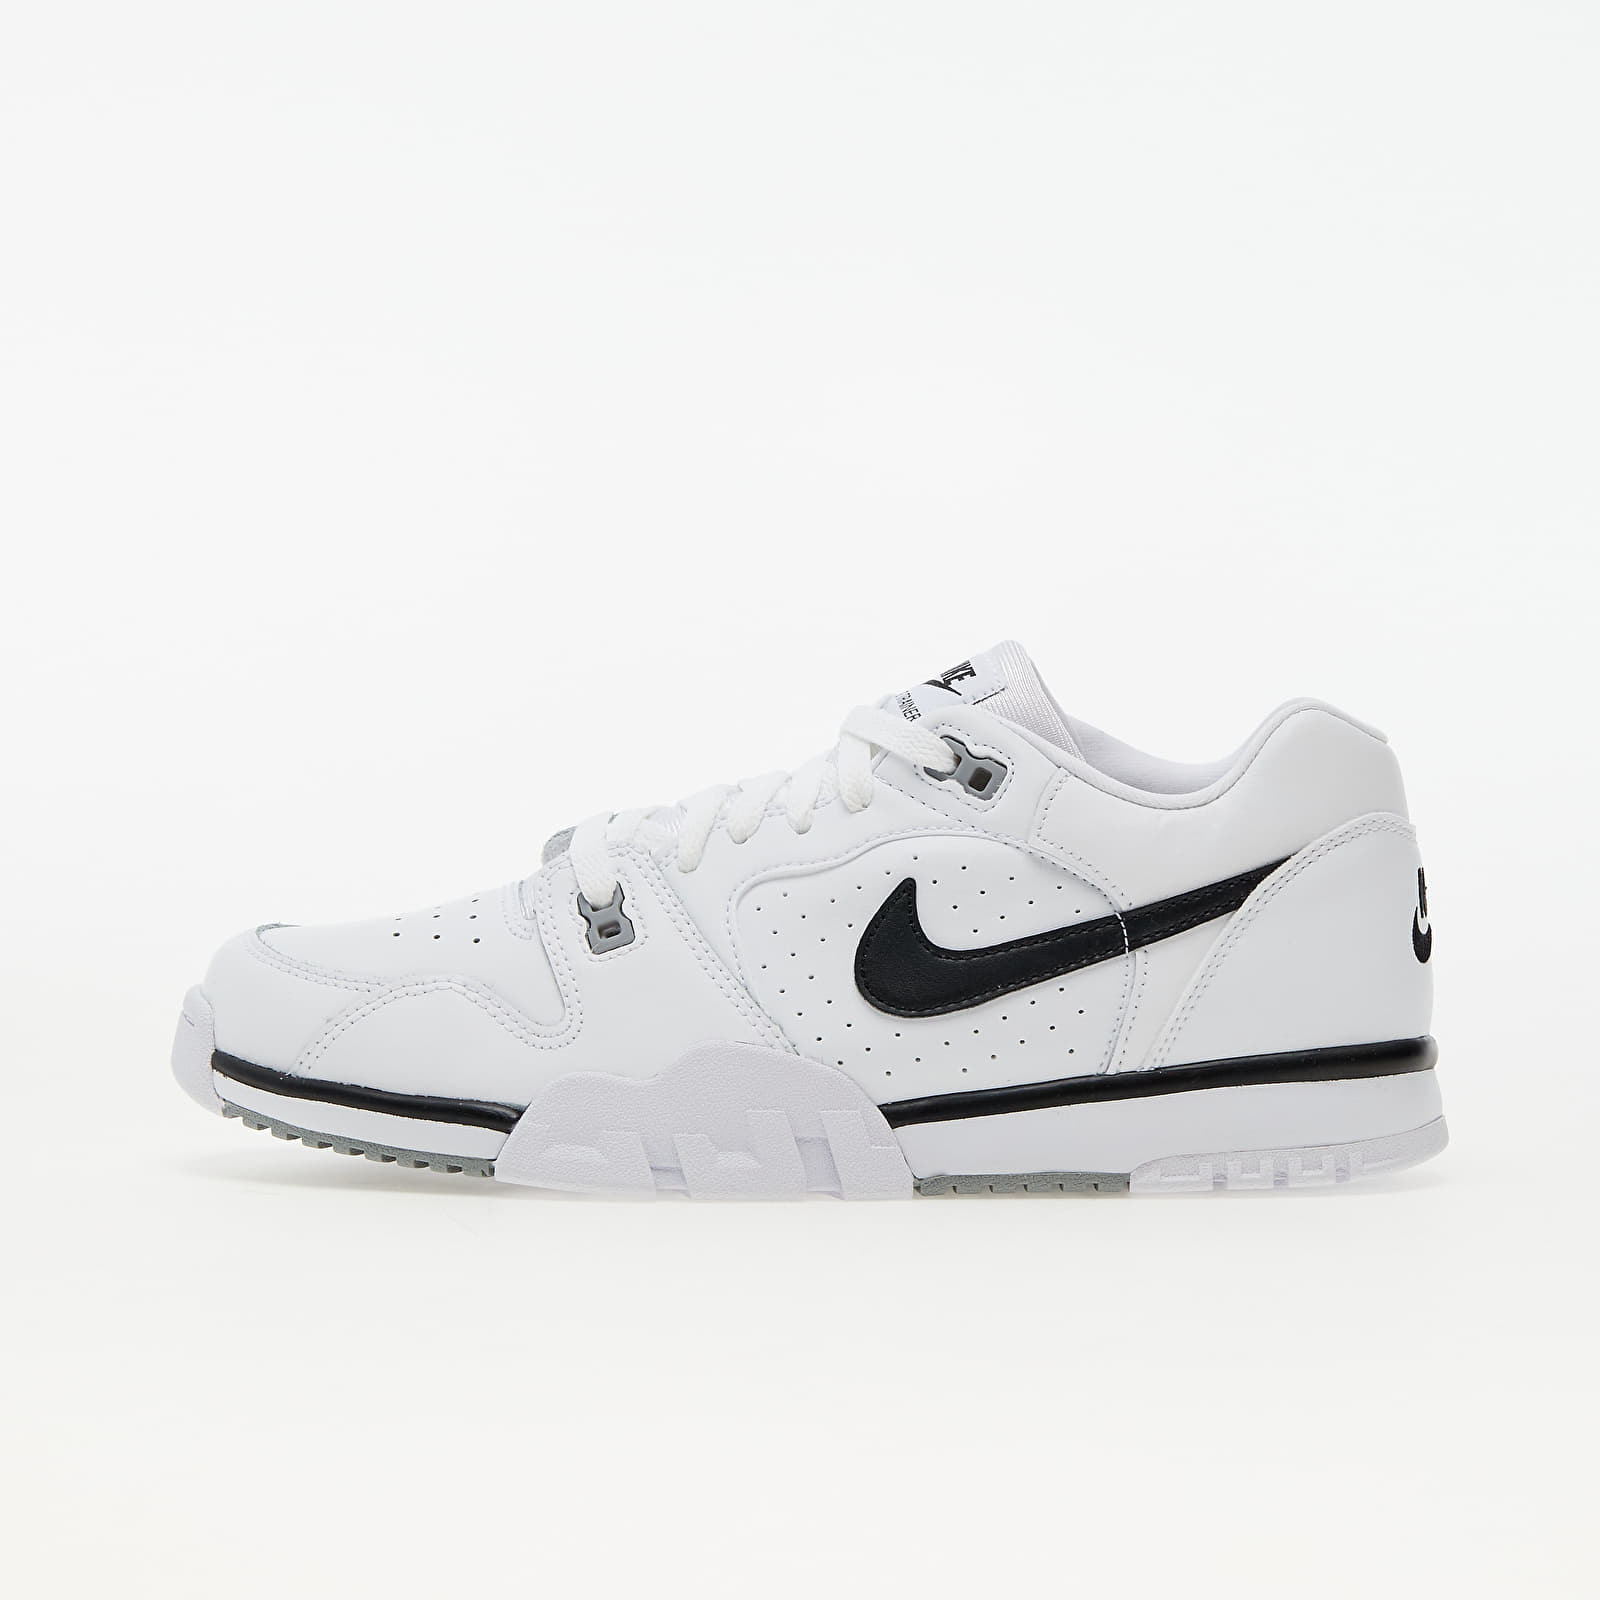 Nike Cross Trainer Low White/ Black-Particle Grey EUR 44.5